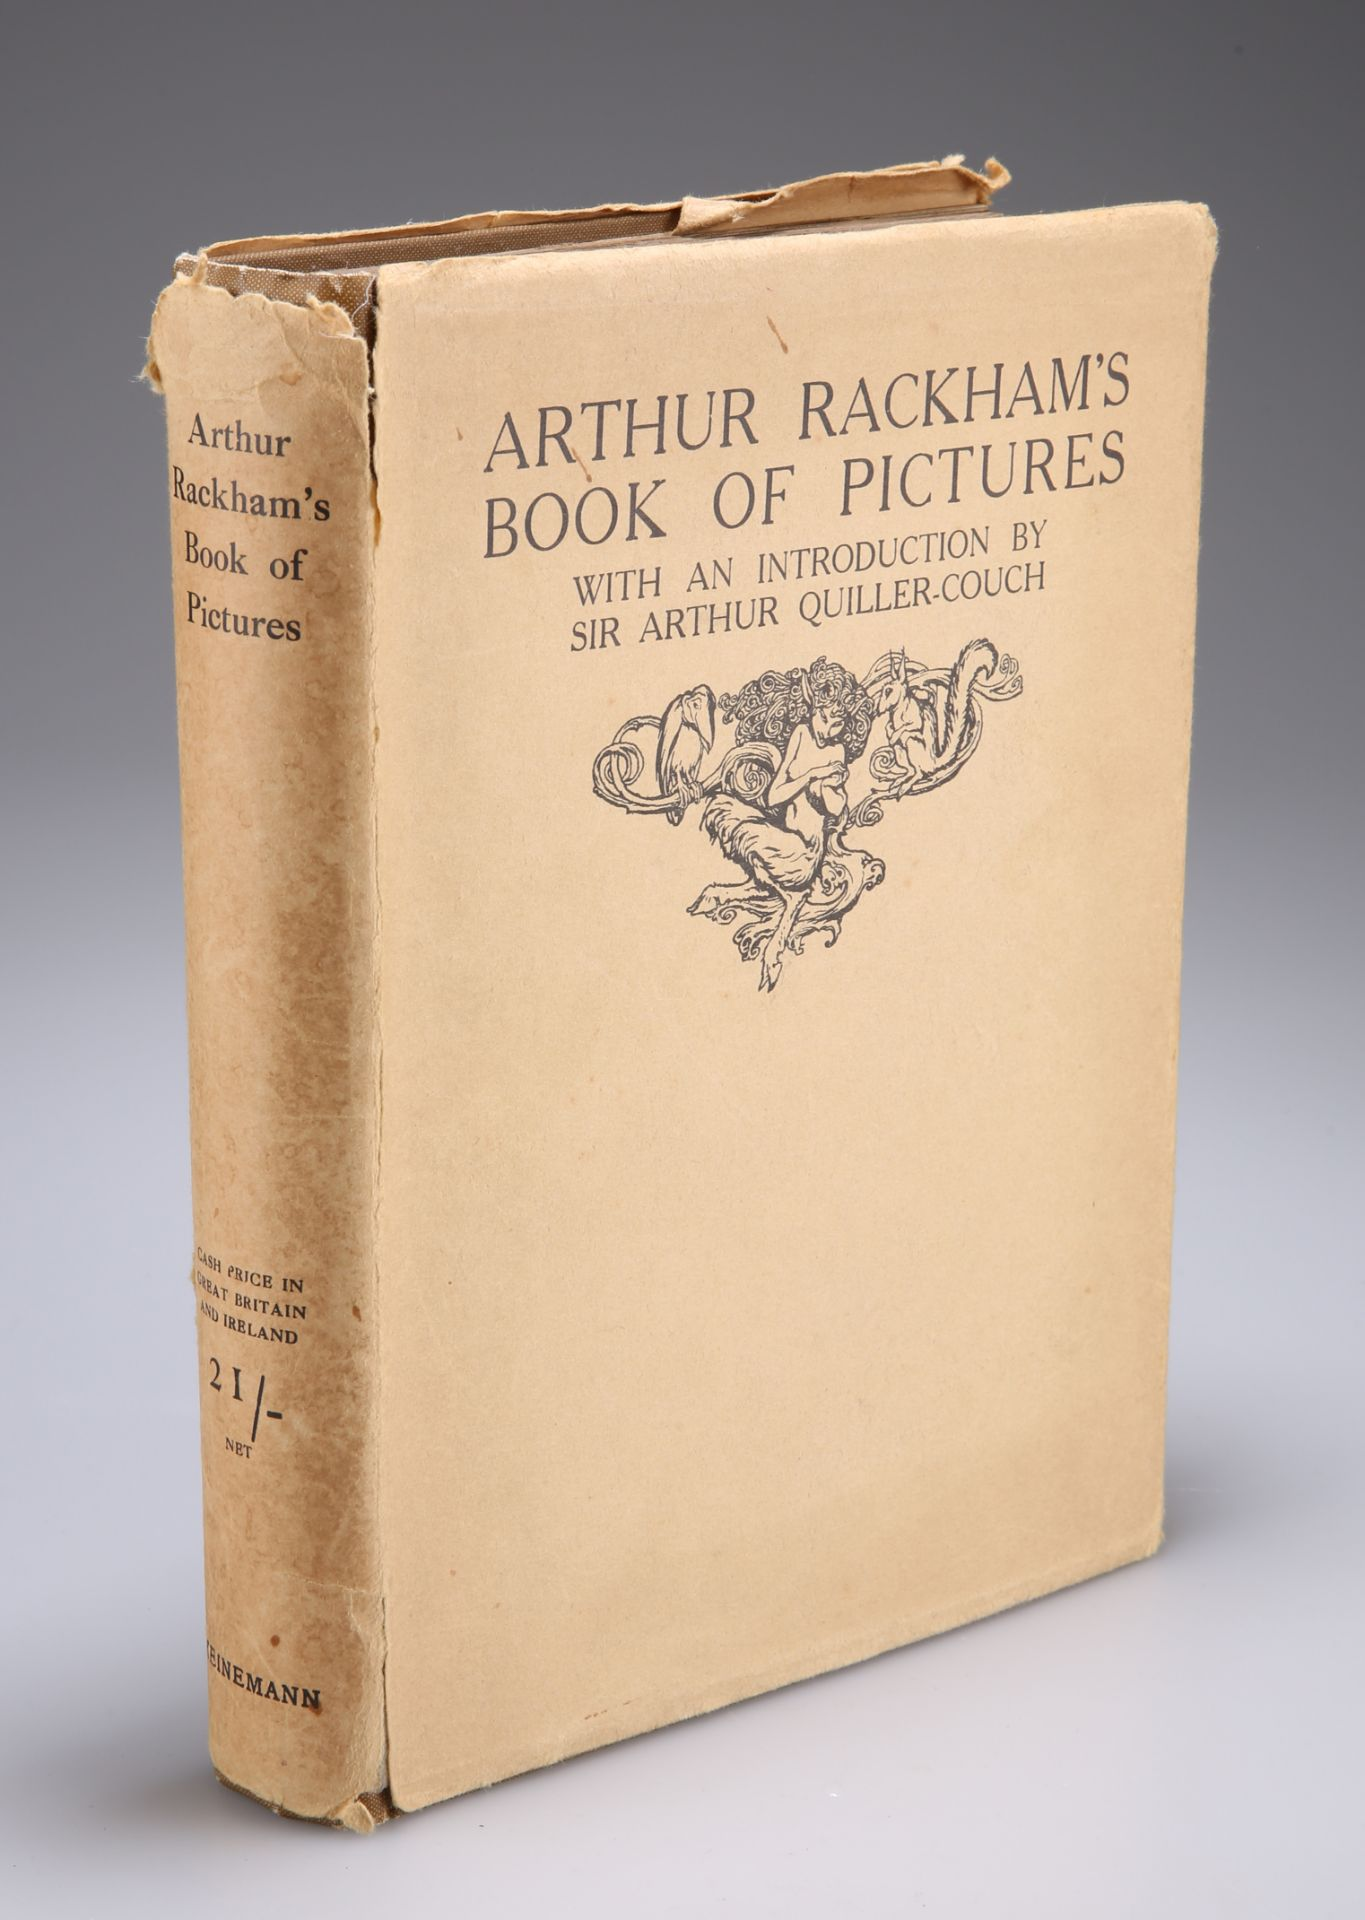 ARTHUR RACKHAM'S BOOK OF PICTURES, with an introduction by Sir Arthur Quiller-Couch, 1923 edition,